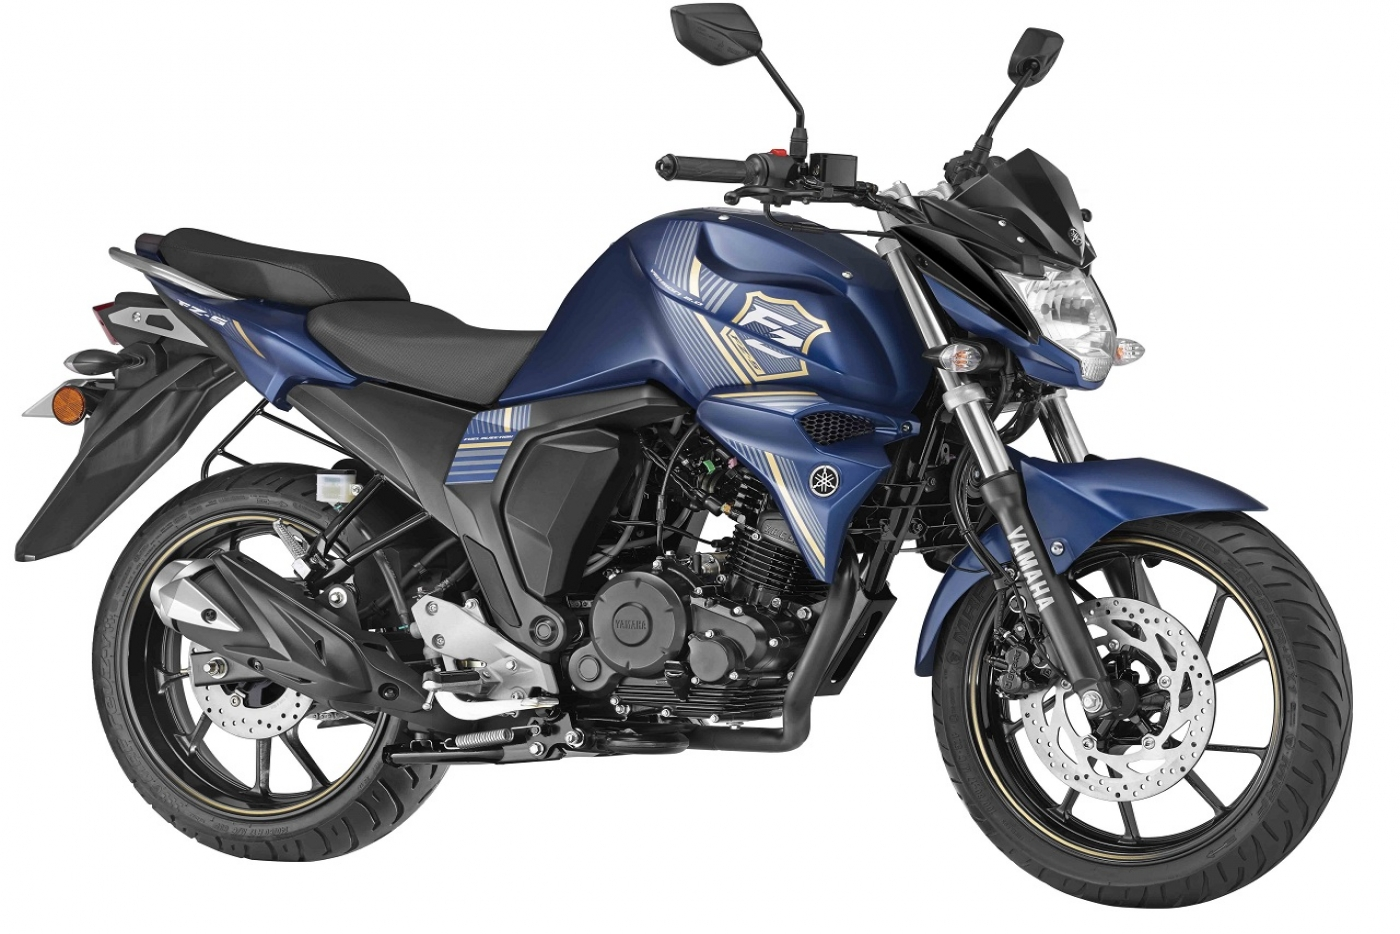 2018-yamaha-fzs-fi-press-front-right-quarter.jpg